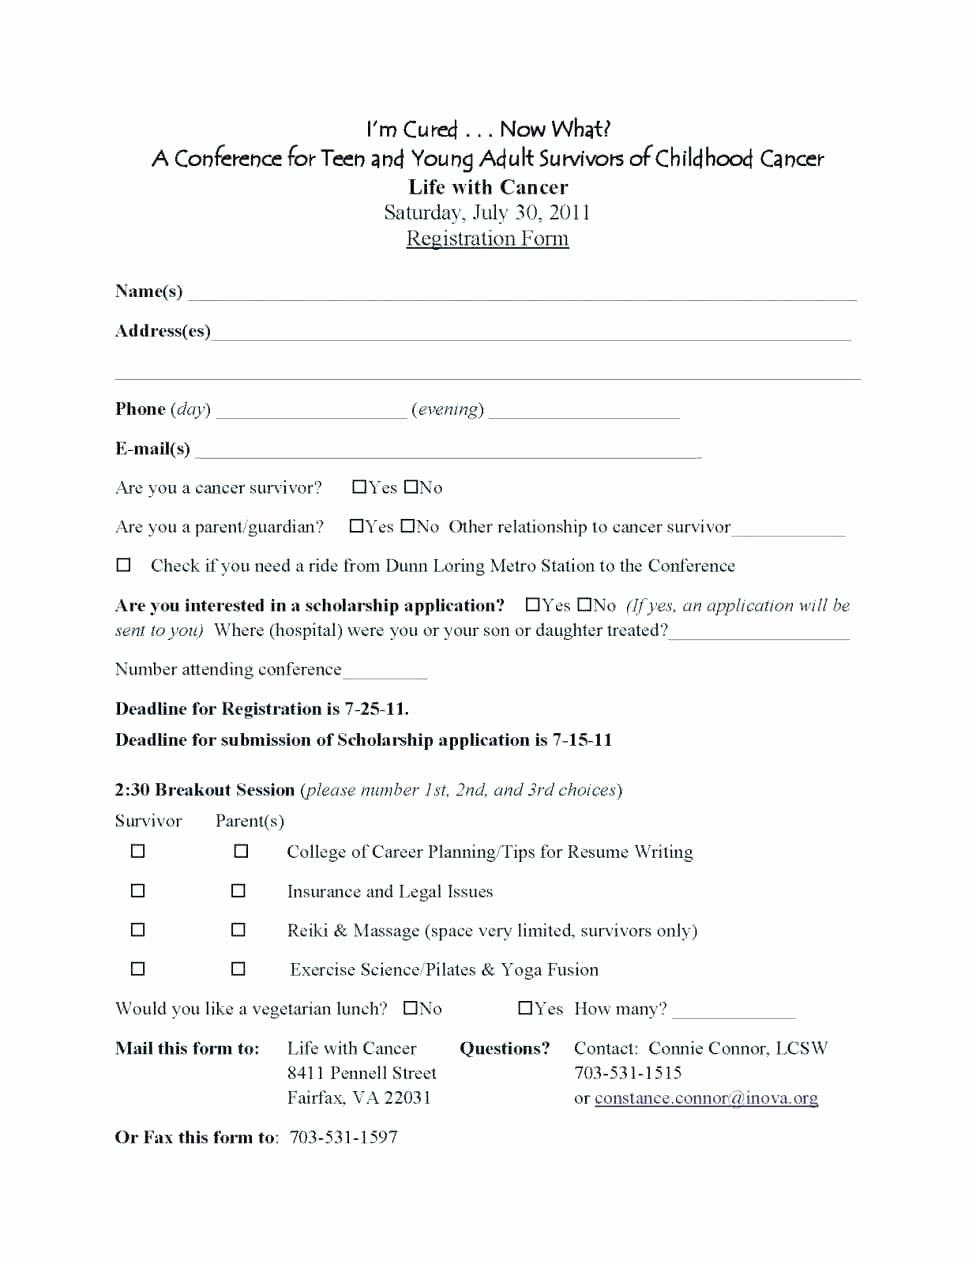 Conference Registration form Template Word Fresh College Application form Template